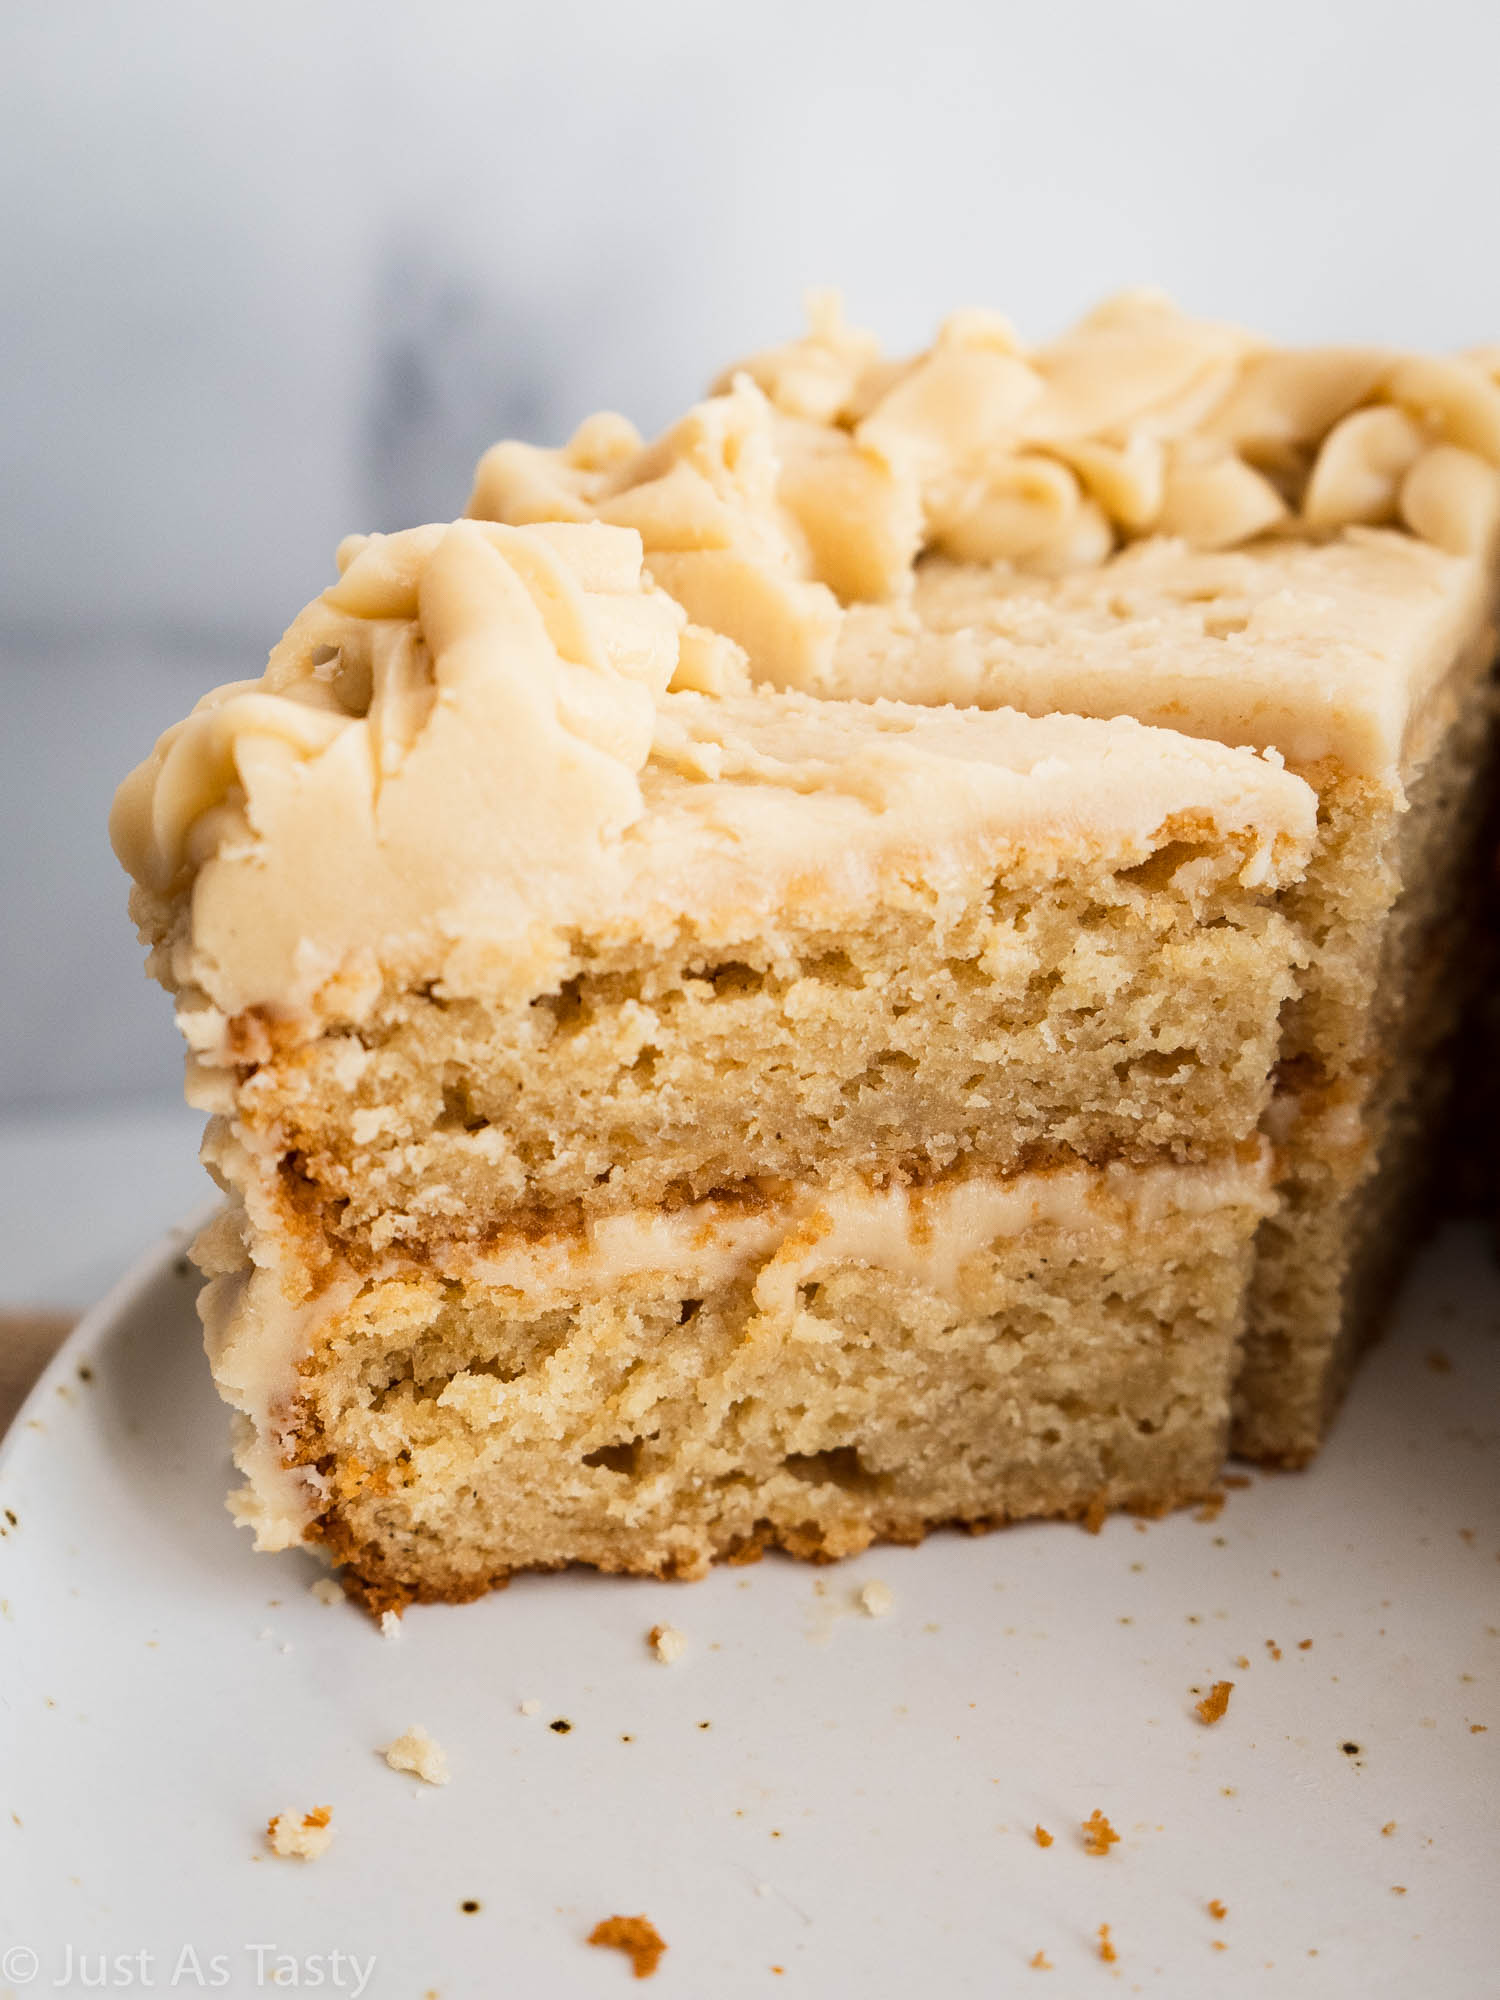 Close-up of a slice of two-layer butterscotch cake.